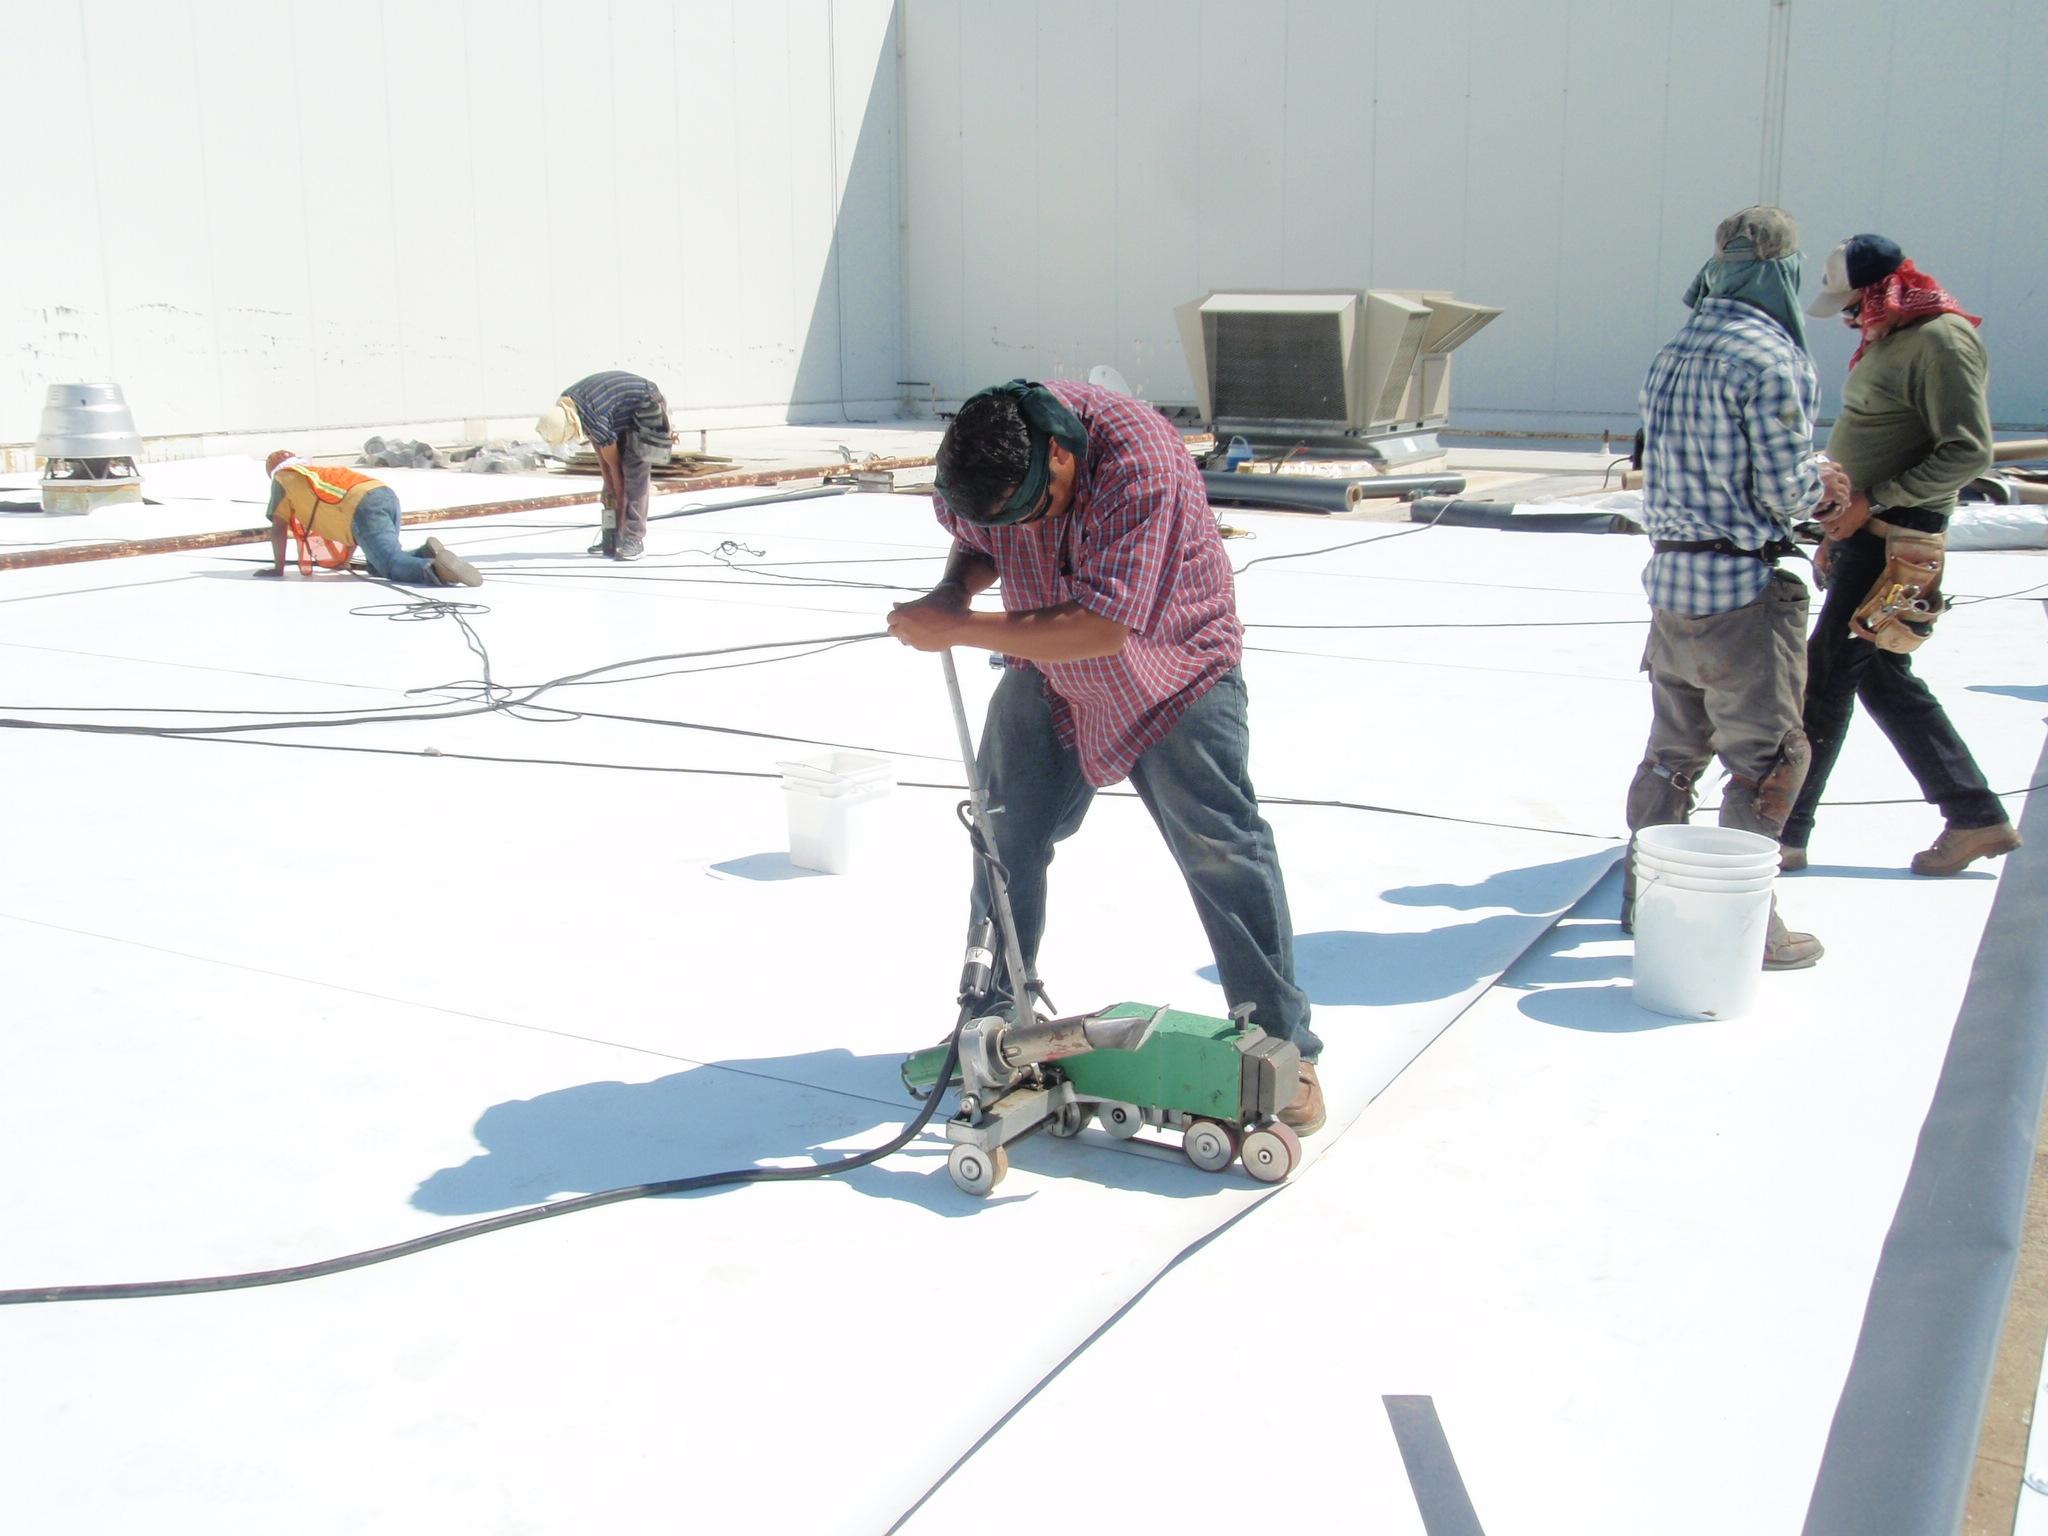 Associations like Single-ply Roofi ng Industry (SPRI) are helping with research and standards-writing efforts geared to enhance current roof design knowledge and best practices. Photo courtesy Johns Manville